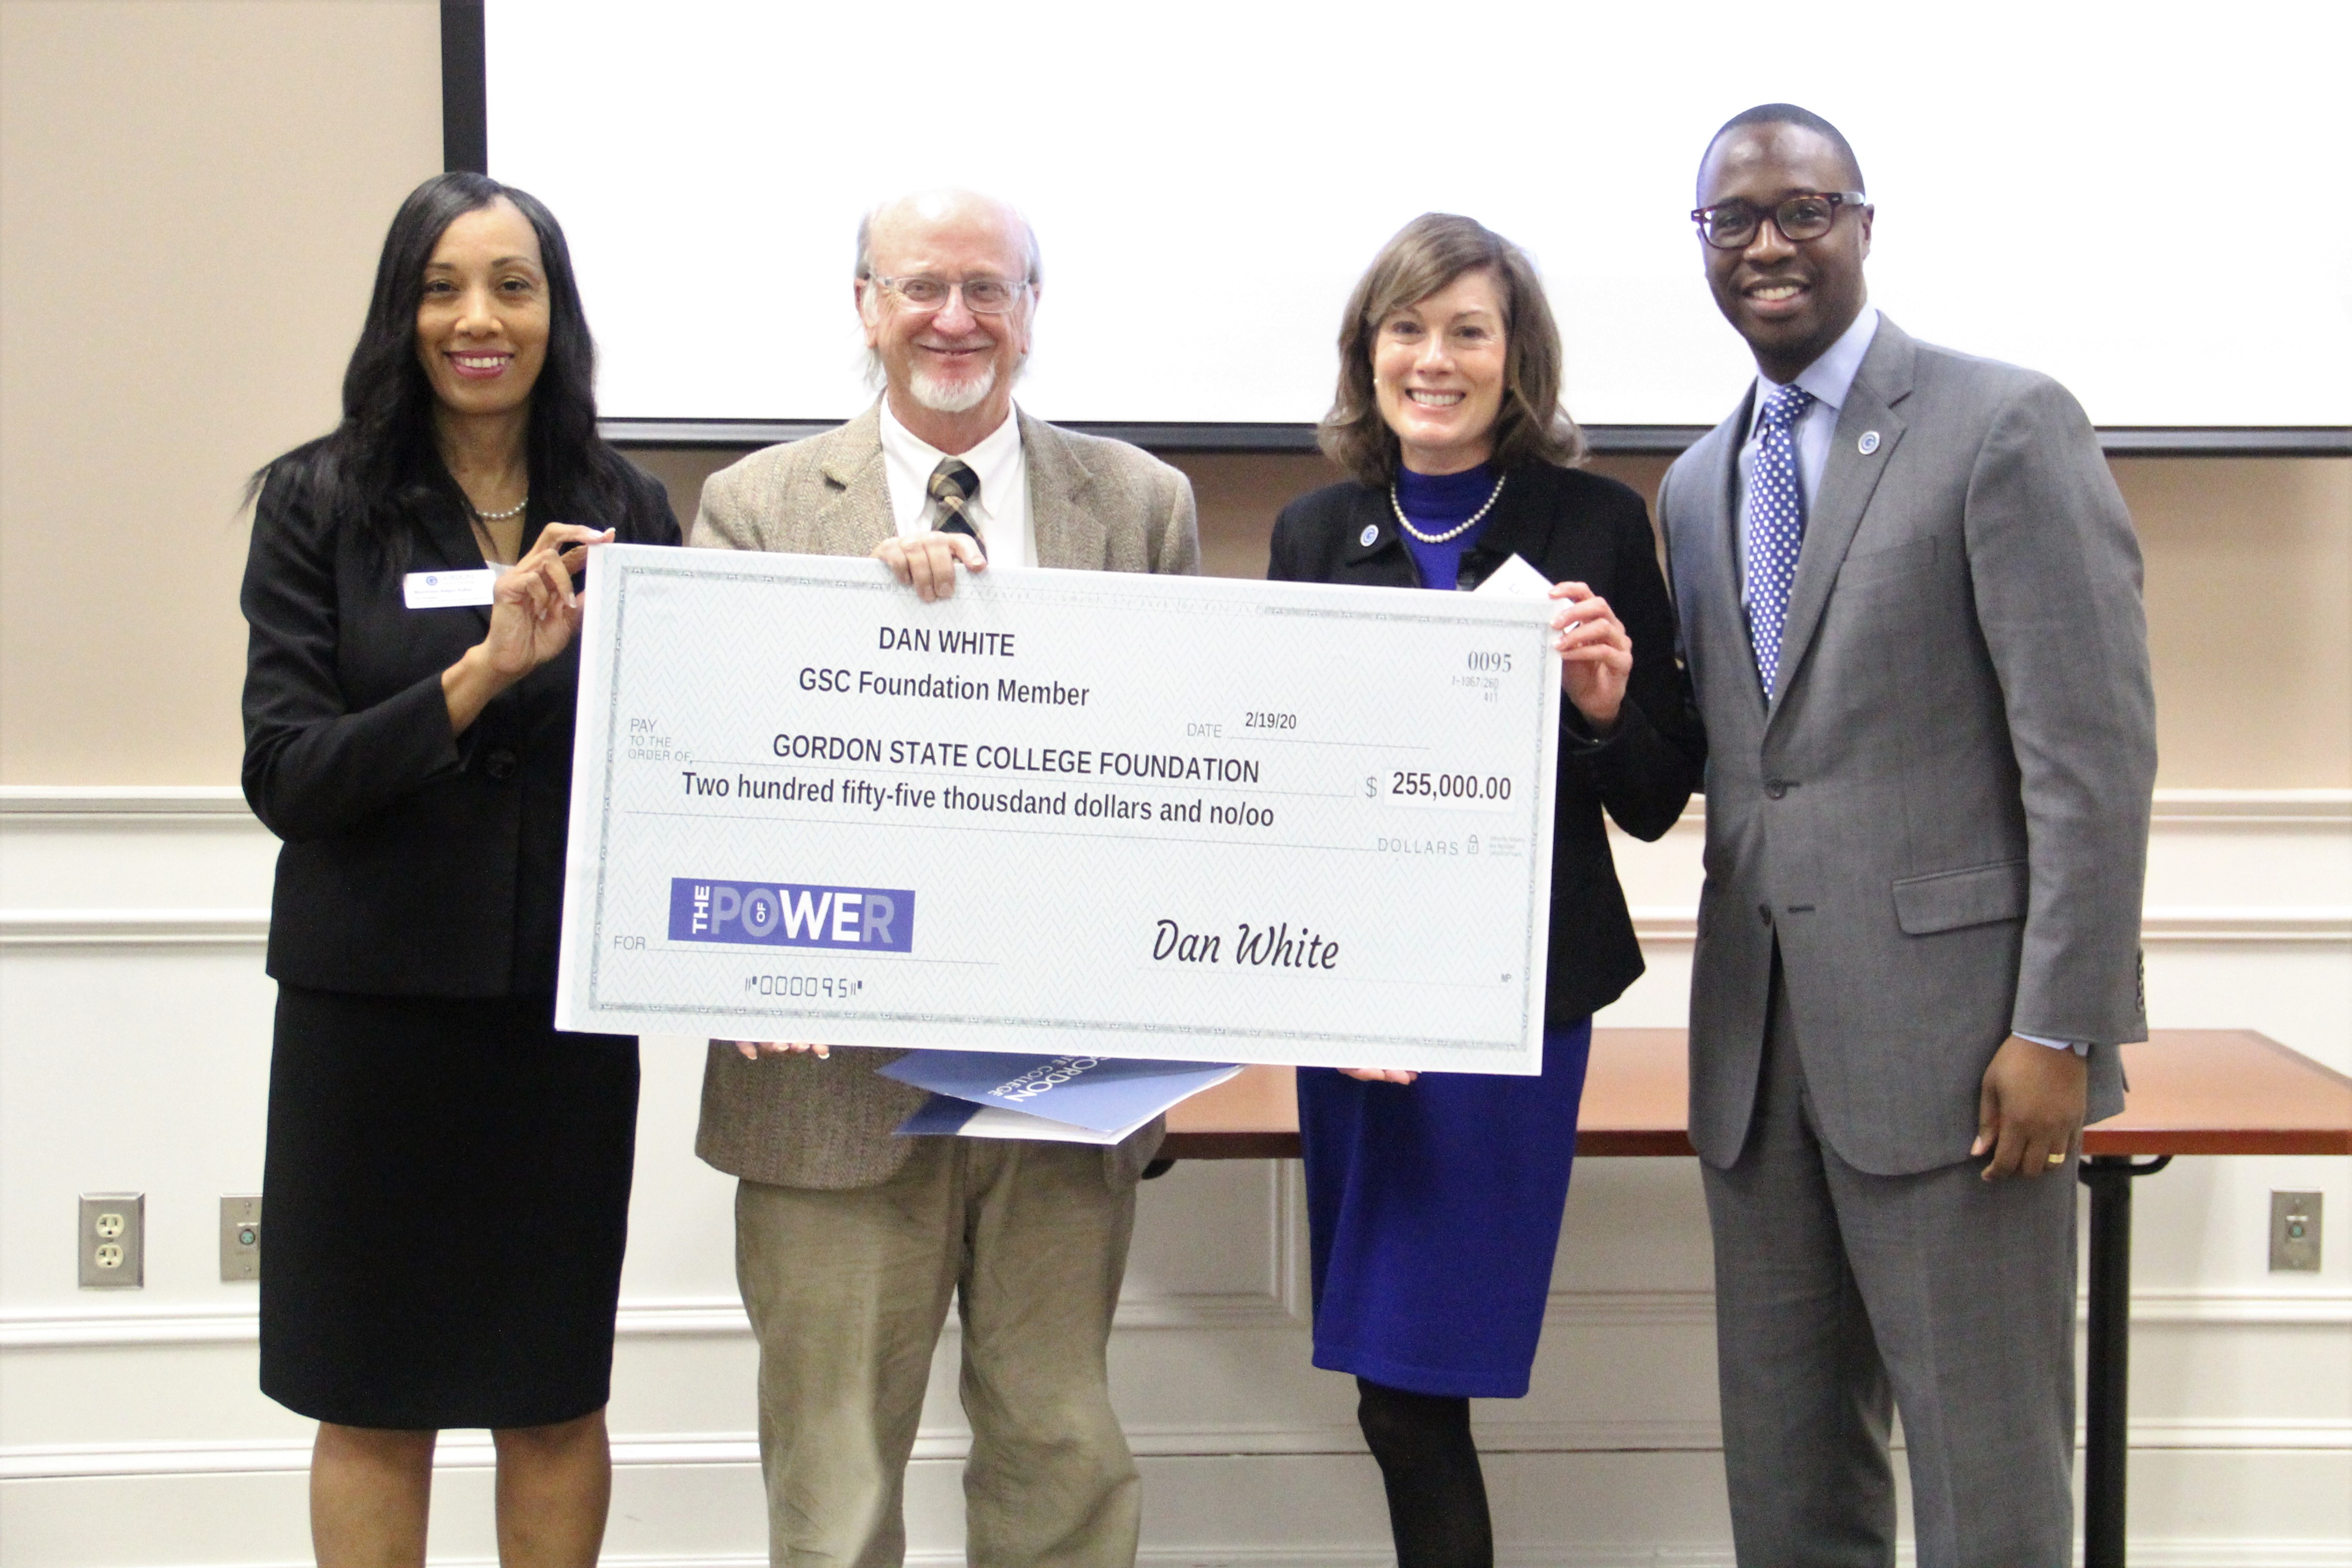 Montrese Adger Fuller, Vice President of Advancement, External Relations and Marketing and Executive Director of the Gordon State College Foundation; Dan White,  Donor and GSC Foundation Trustee; Lucinda Dallas, GSC Foundation Chair and President Kirk A. Nooks.